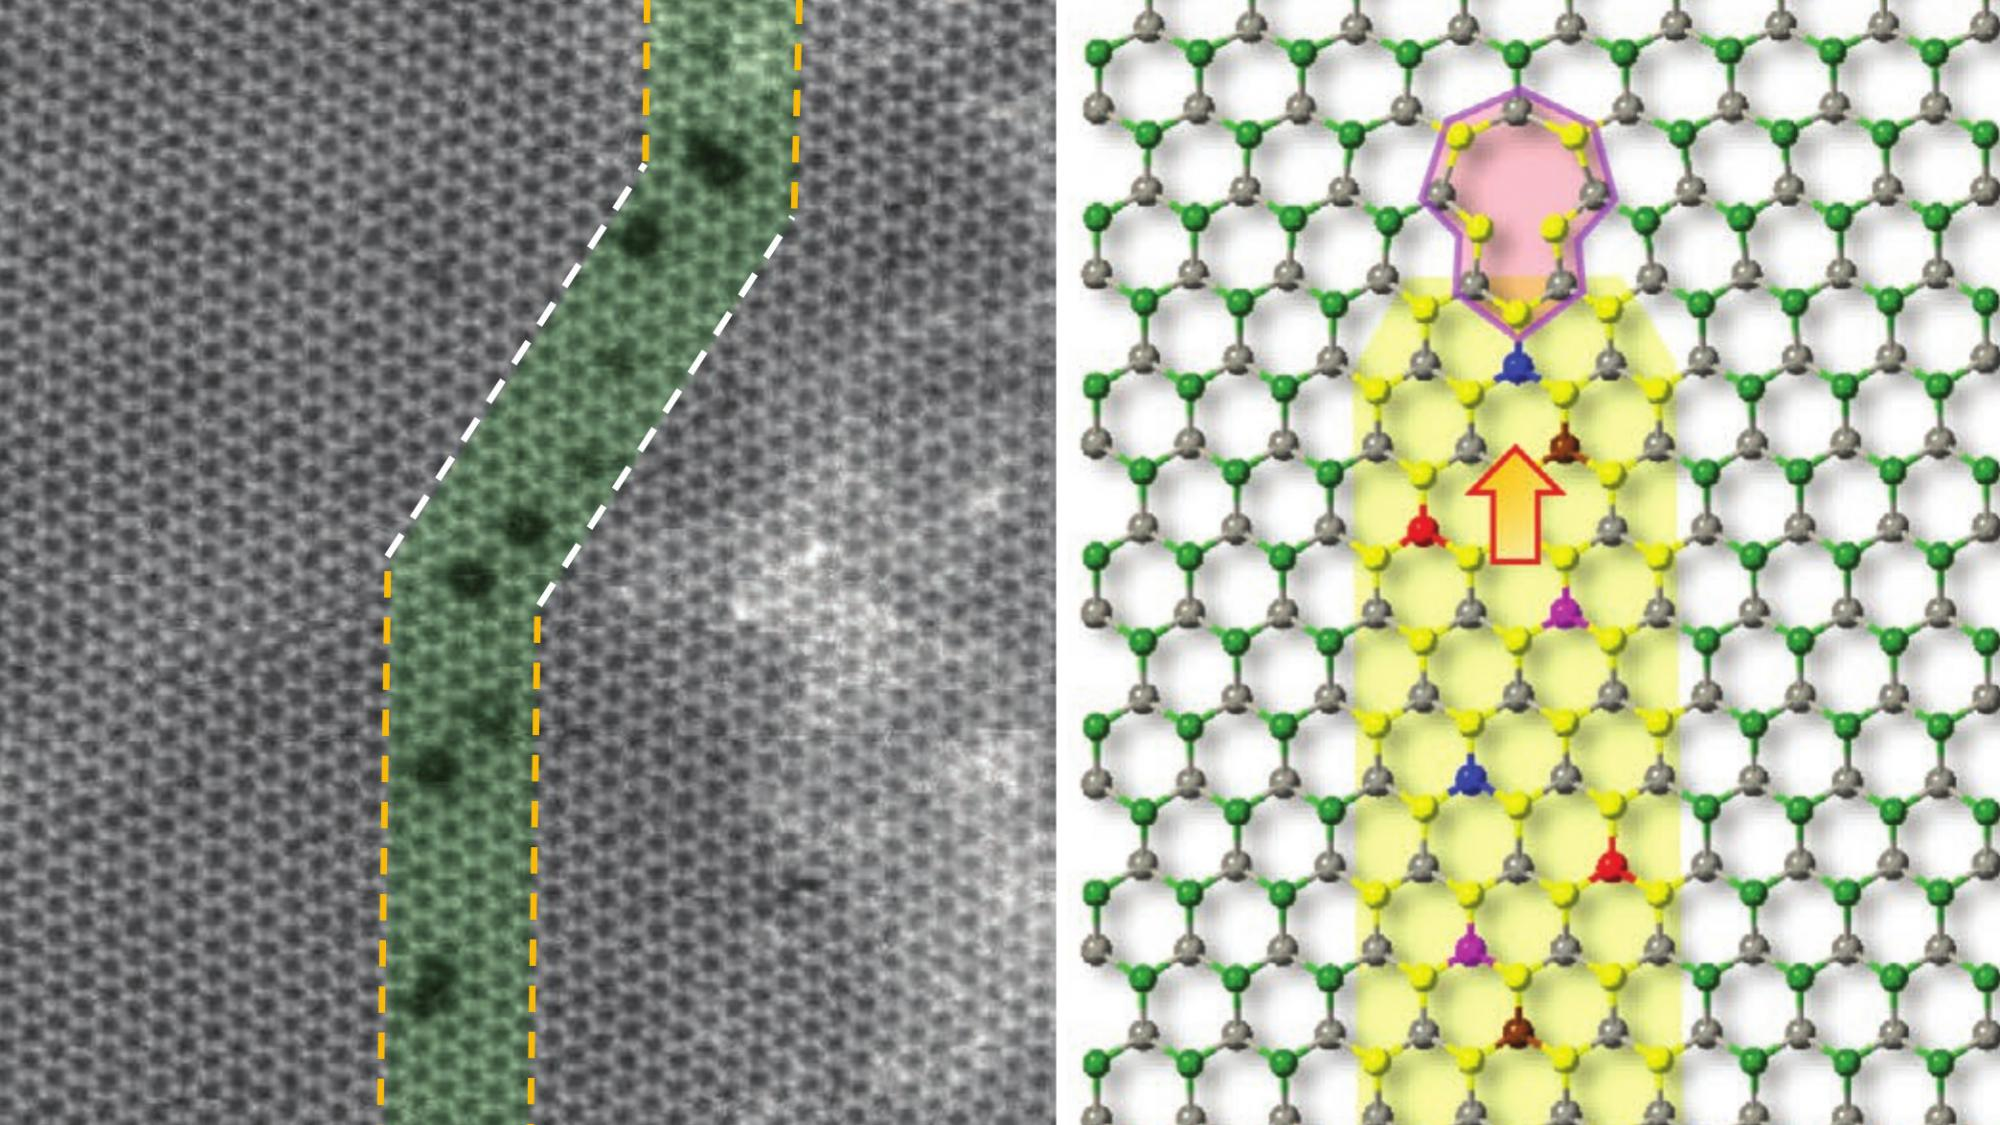 Research breakthrough: a new method for substituting atoms in 2D materials